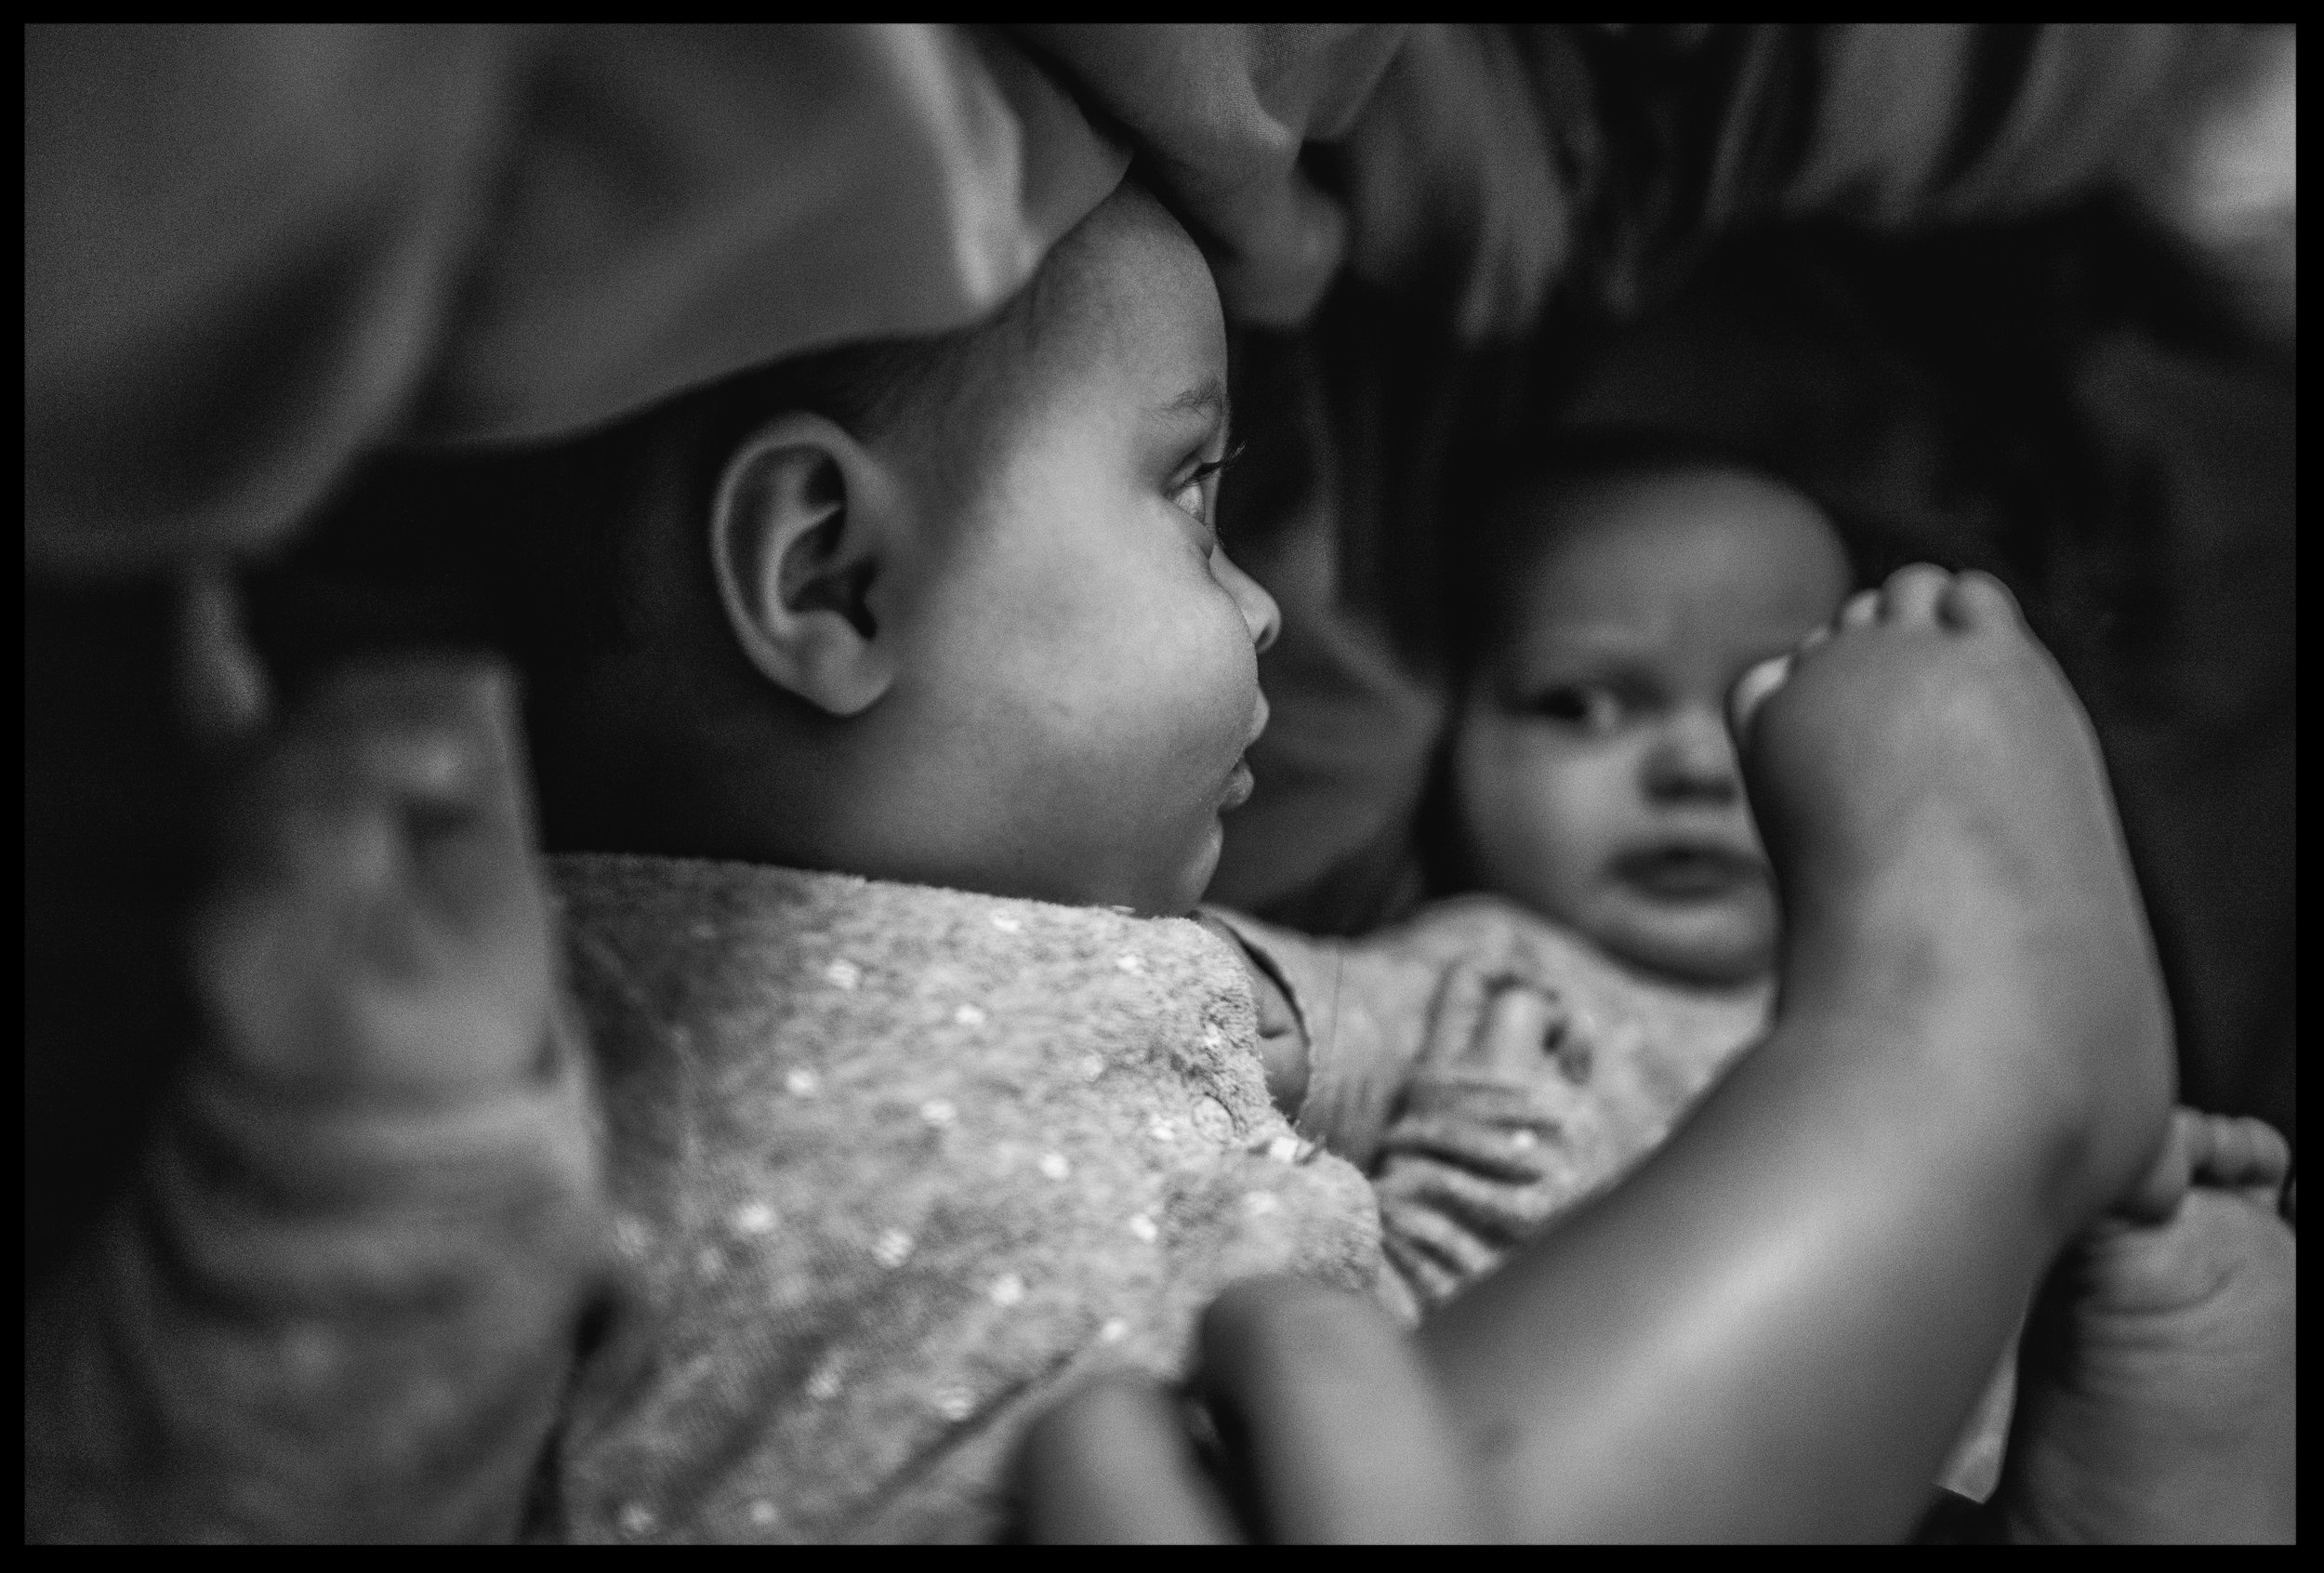 Twin baby girls lying on the bed looking at each other, black and white, Aurora, Colorado